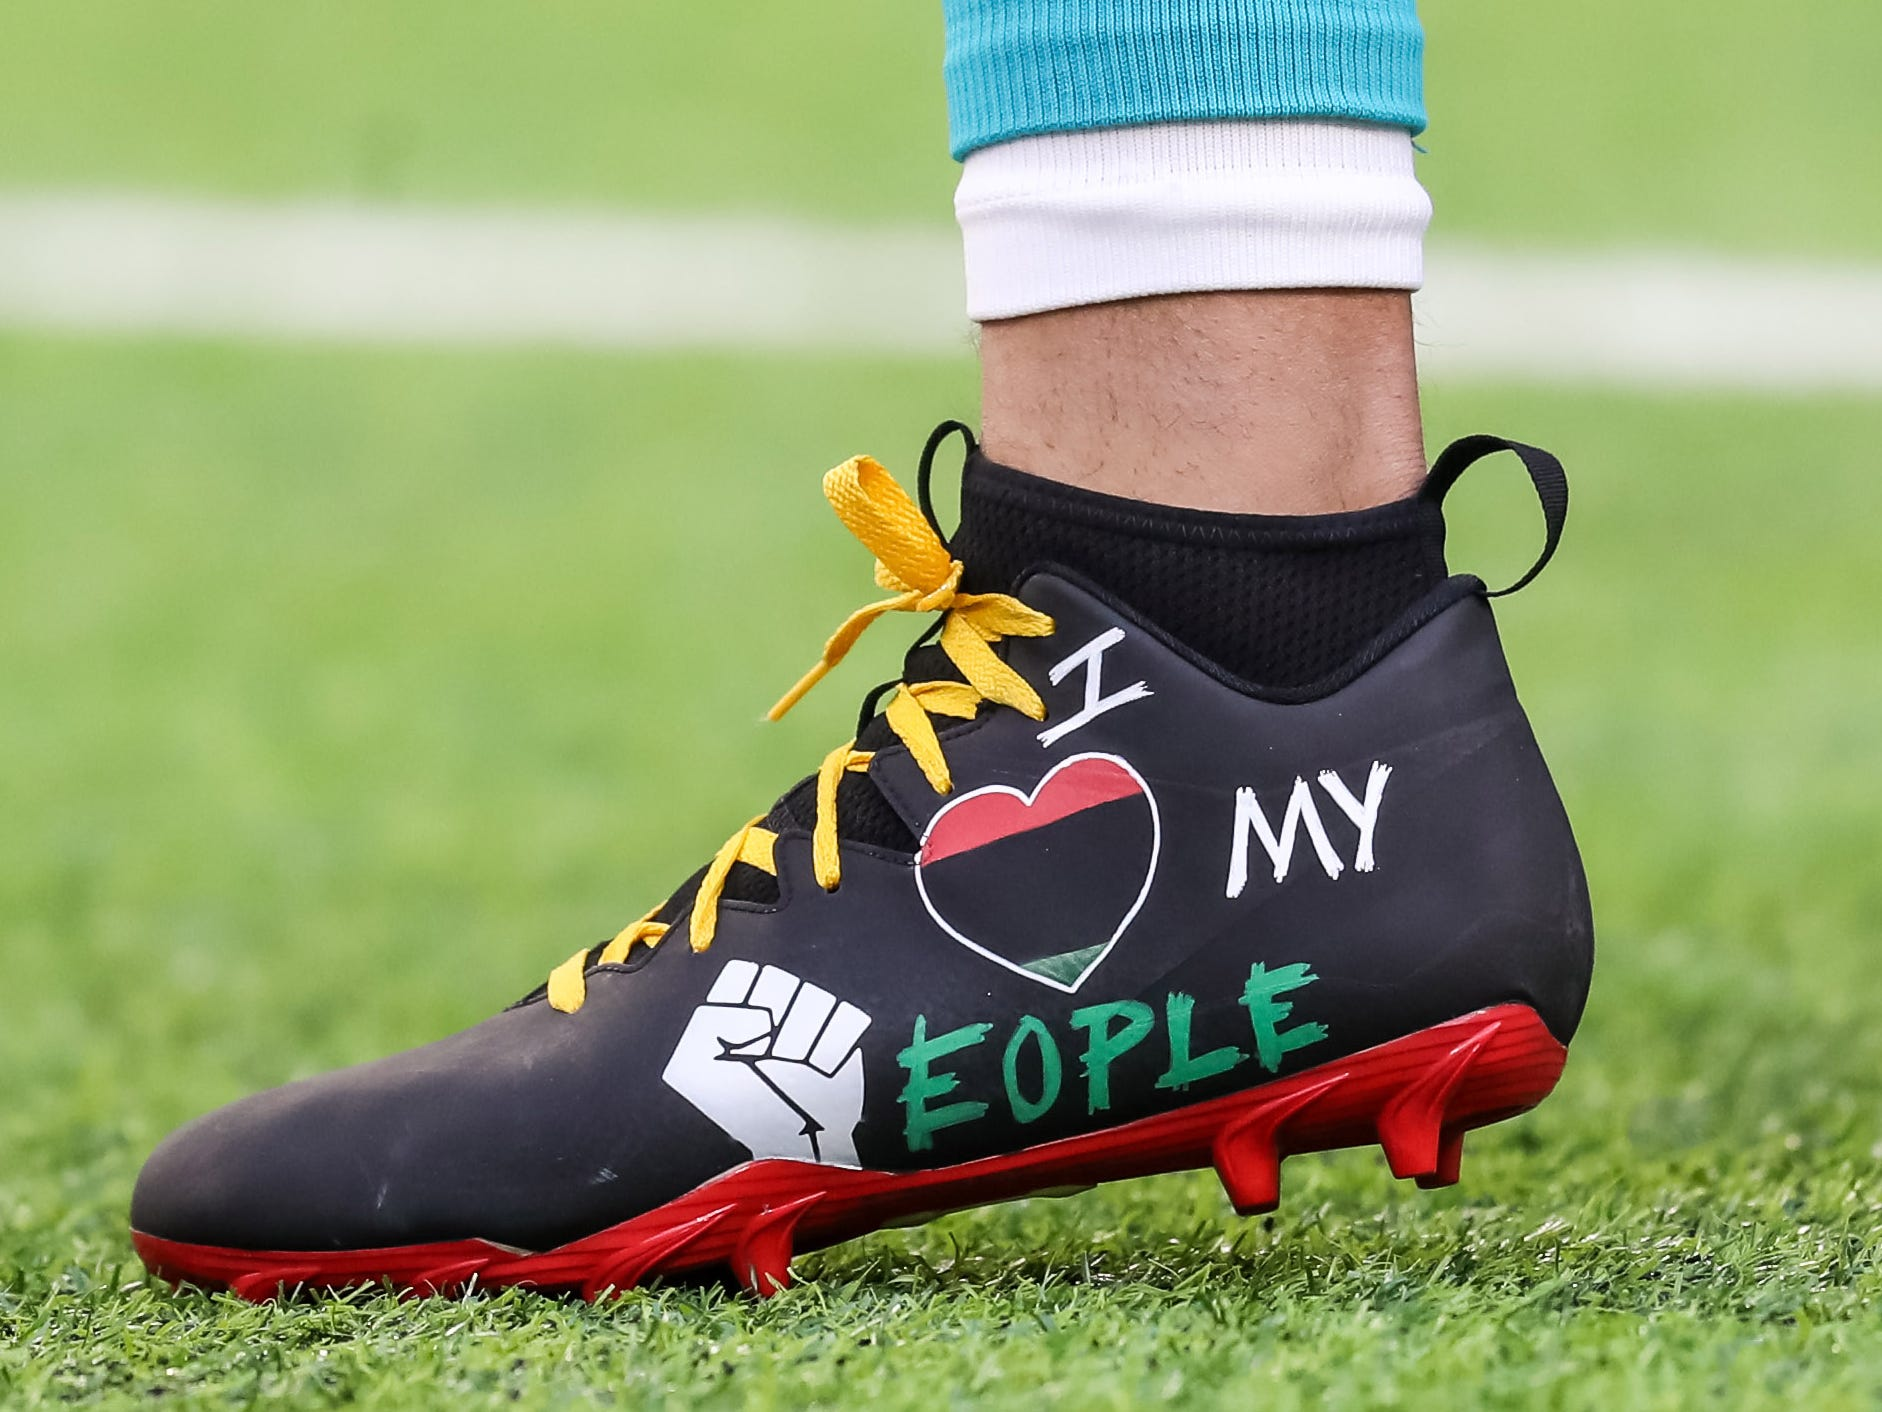 The shoes of Miami Dolphins wide receiver Kenny Stills prior to the game against the Minnesota Vikings at U.S. Bank Stadium.